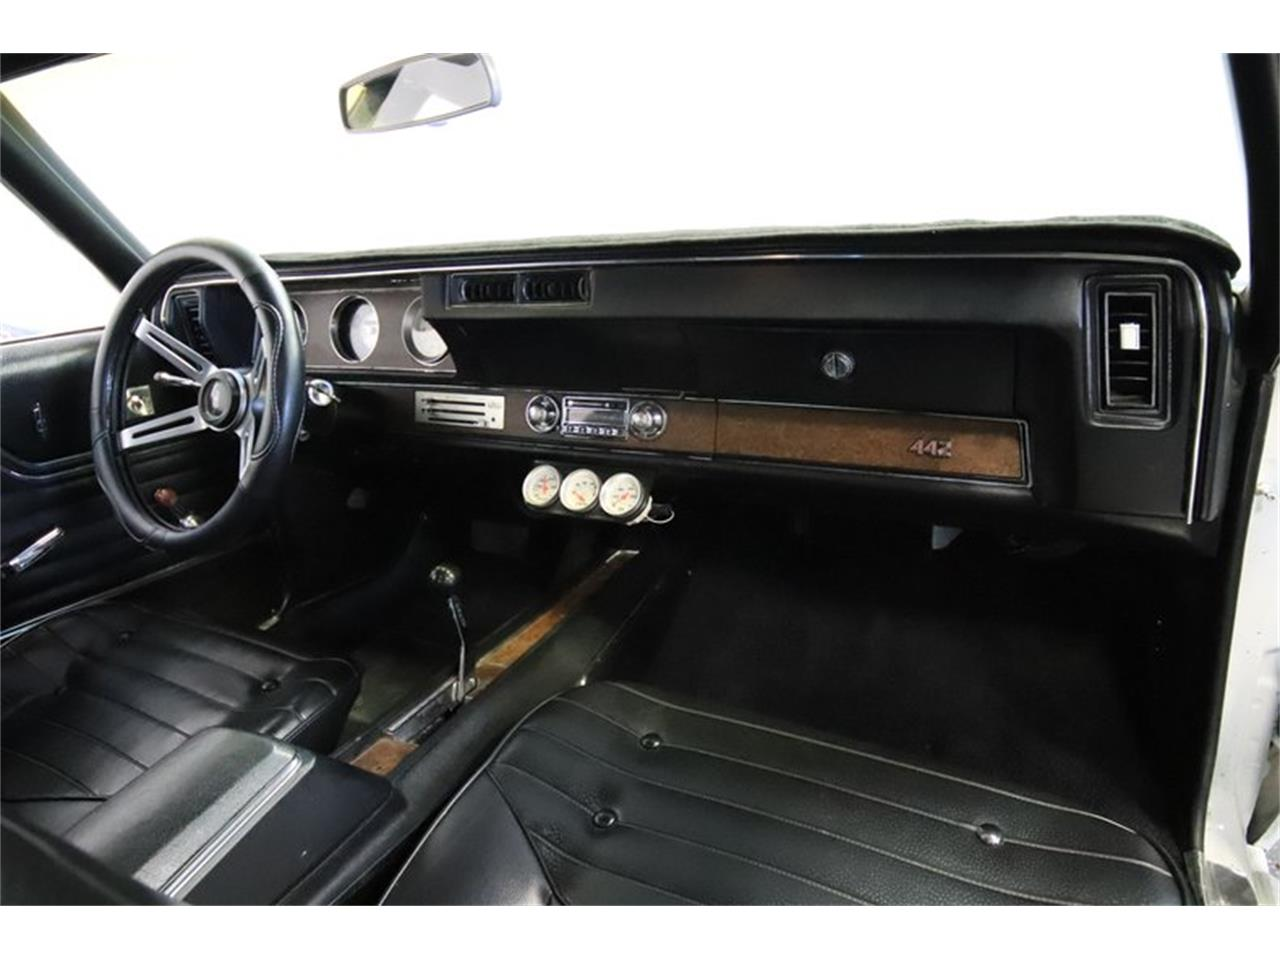 Large Picture of '70 Oldsmobile 442 located in Arizona Offered by Streetside Classics - Phoenix - Q7BT